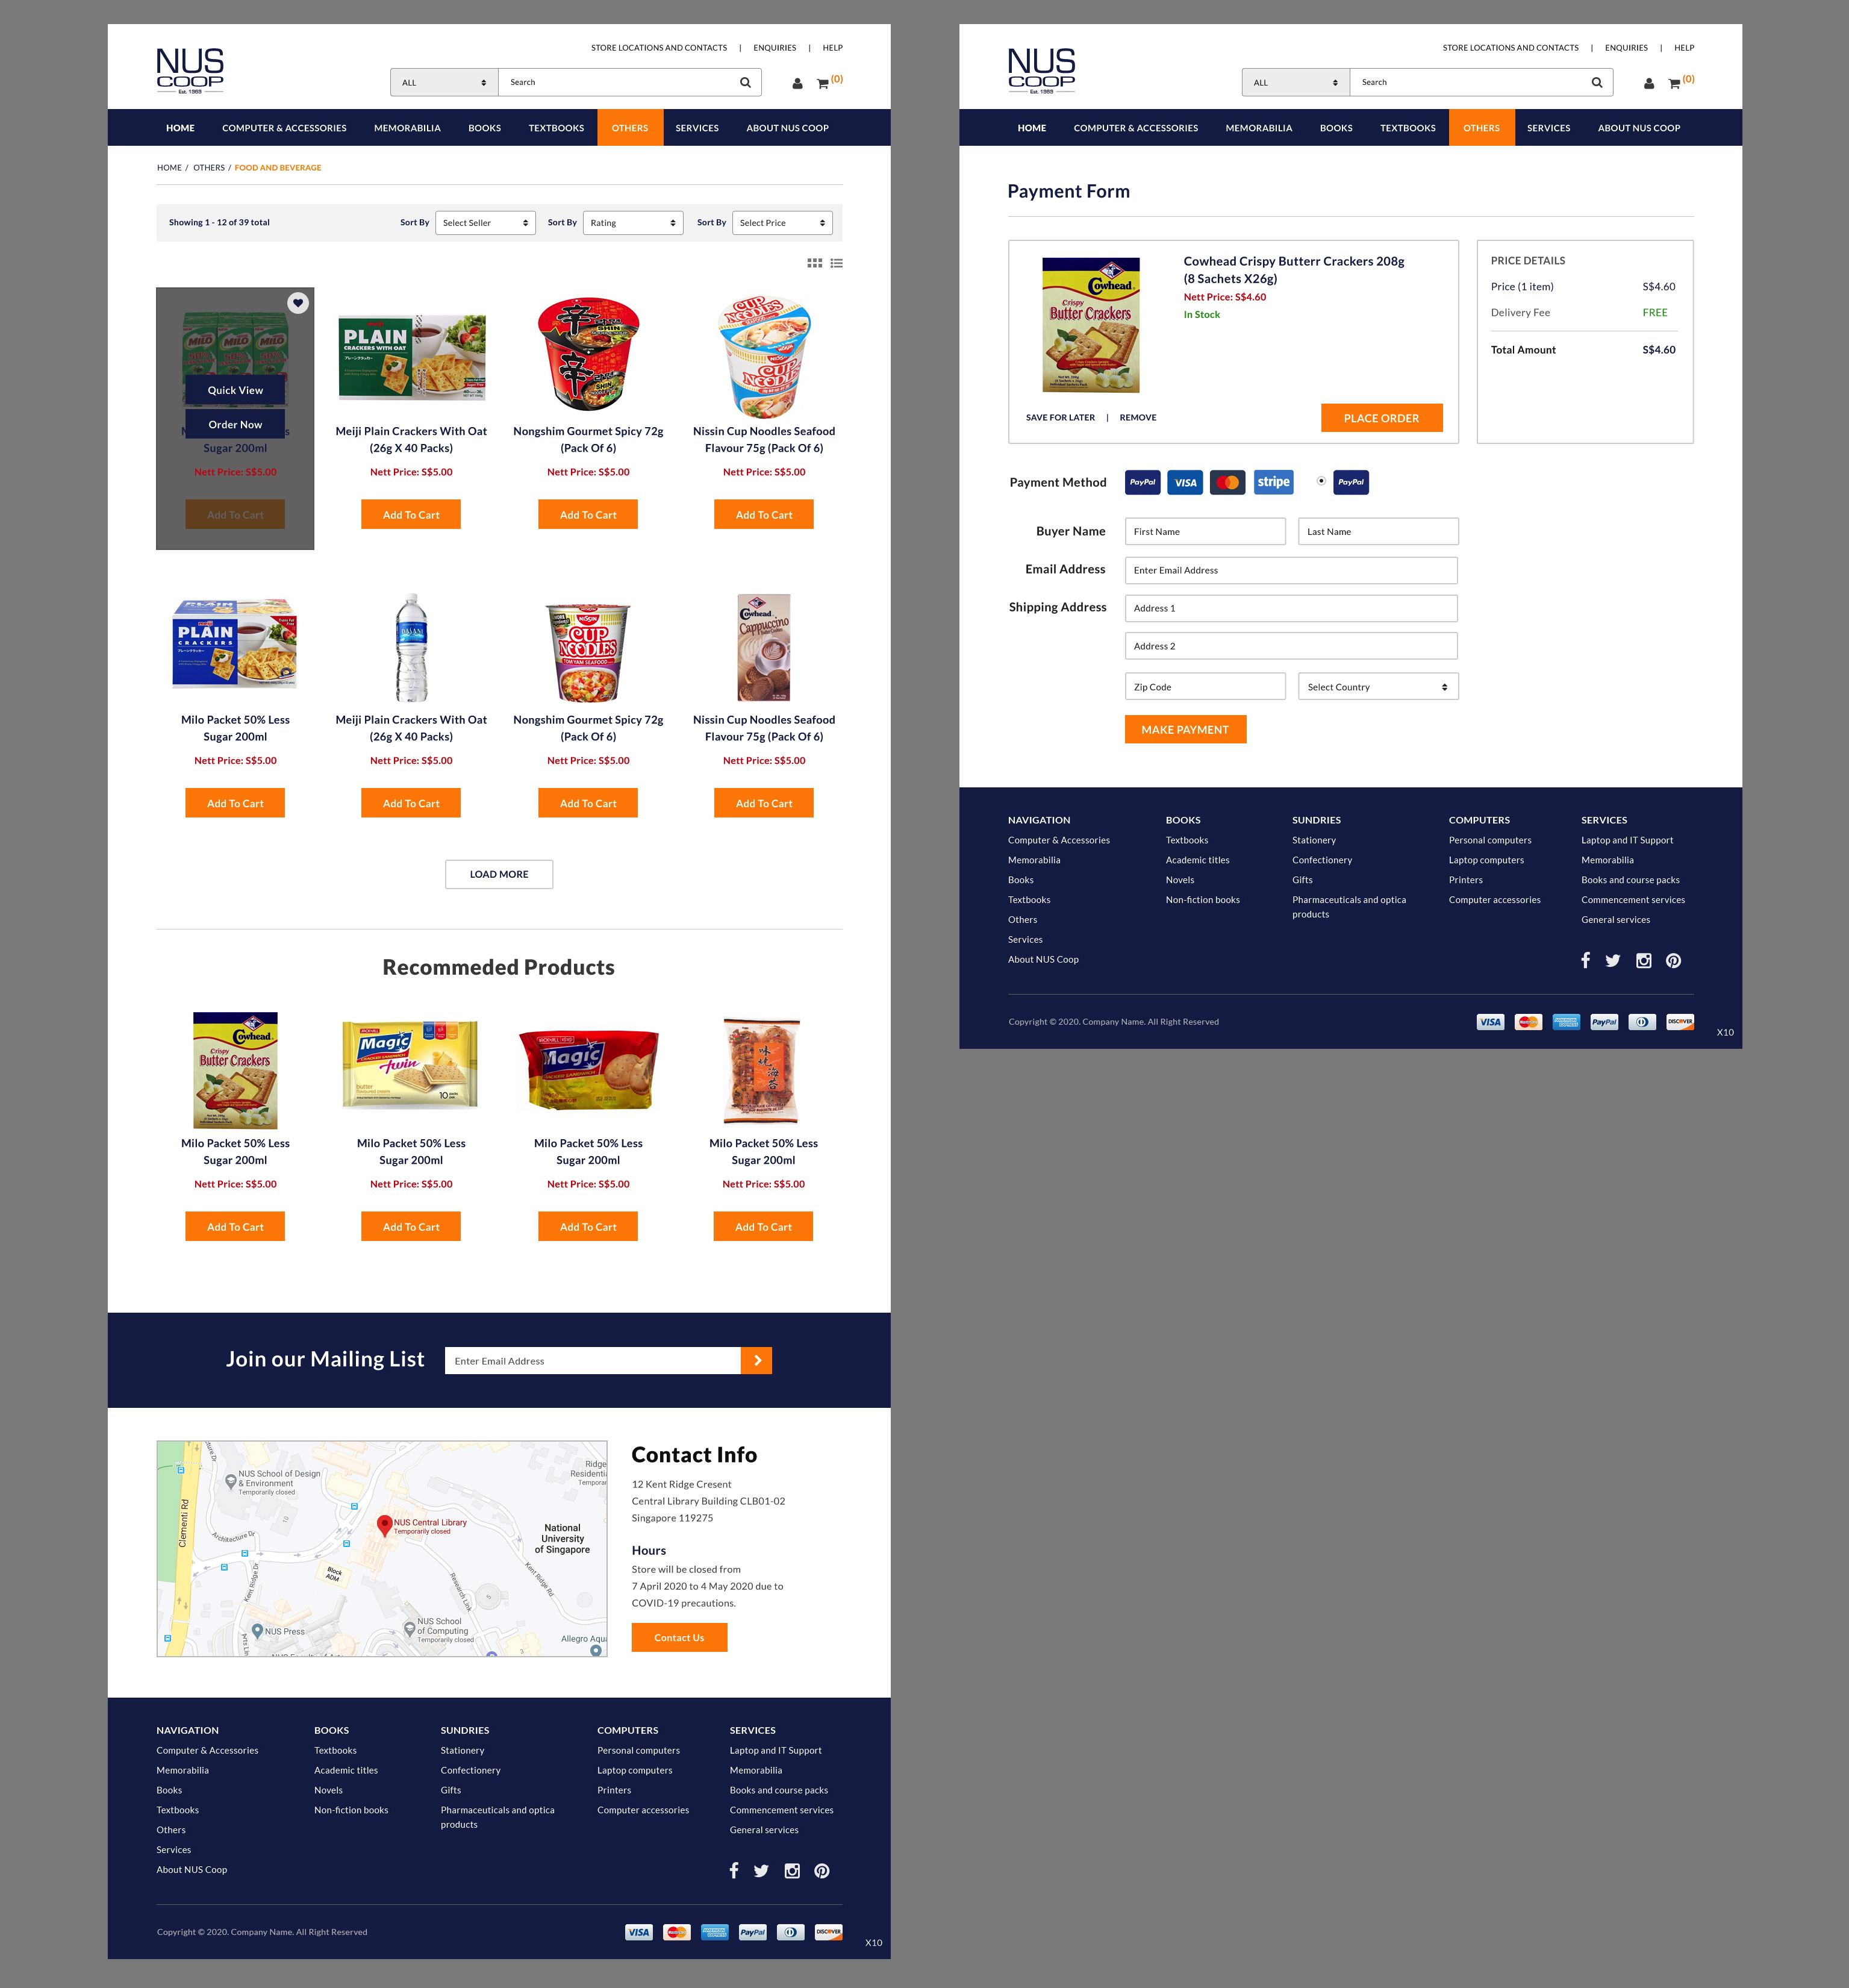 Professional Modern Web Design For A Company By Pb Design 24549573